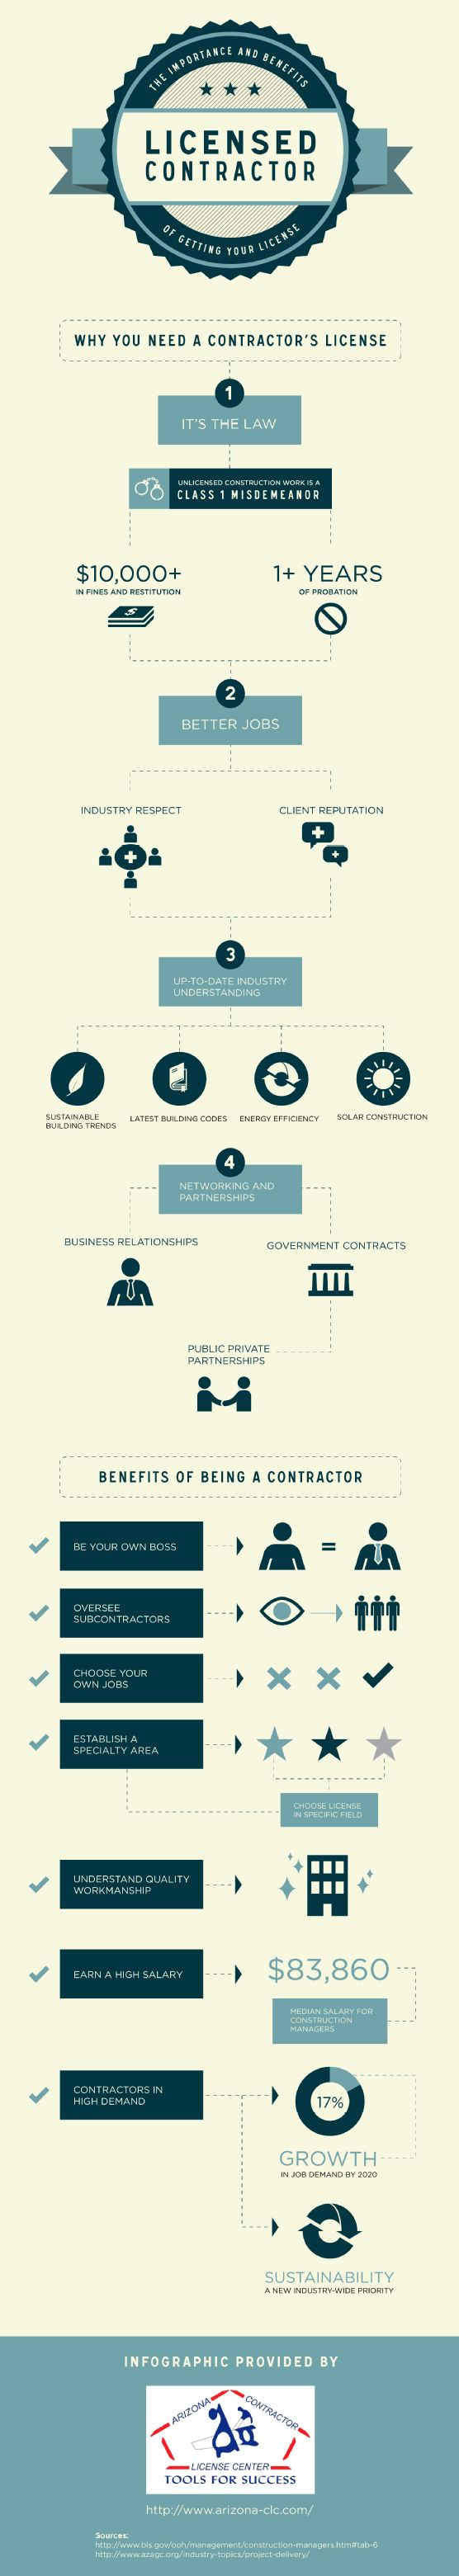 A contractor's license symbolizes a variety of important characteristics. By earning your license, you can stay up-to-date on the latest news and trends in the industry, letting you keep up with customer demand. Find more benefits on this Arizona Contractor License Center infographic. Source: http://www.arizona-clc.com/639127/2013/02/04/certified-contractor-the-importance-and-benefits-of-getting-your-license-infographic-.html